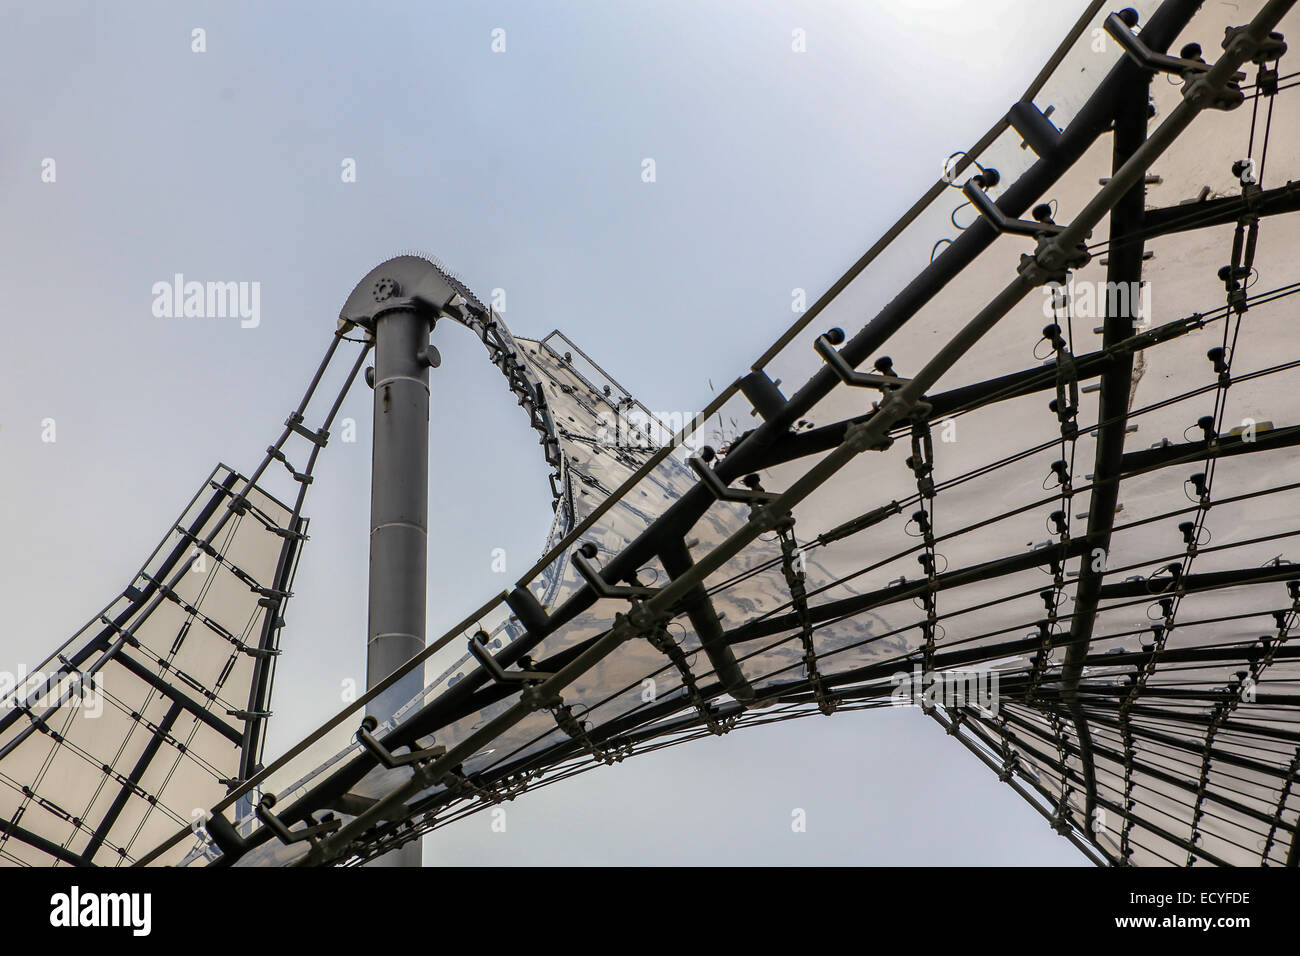 acrylic glass roof olympic park munich germany - Stock Image